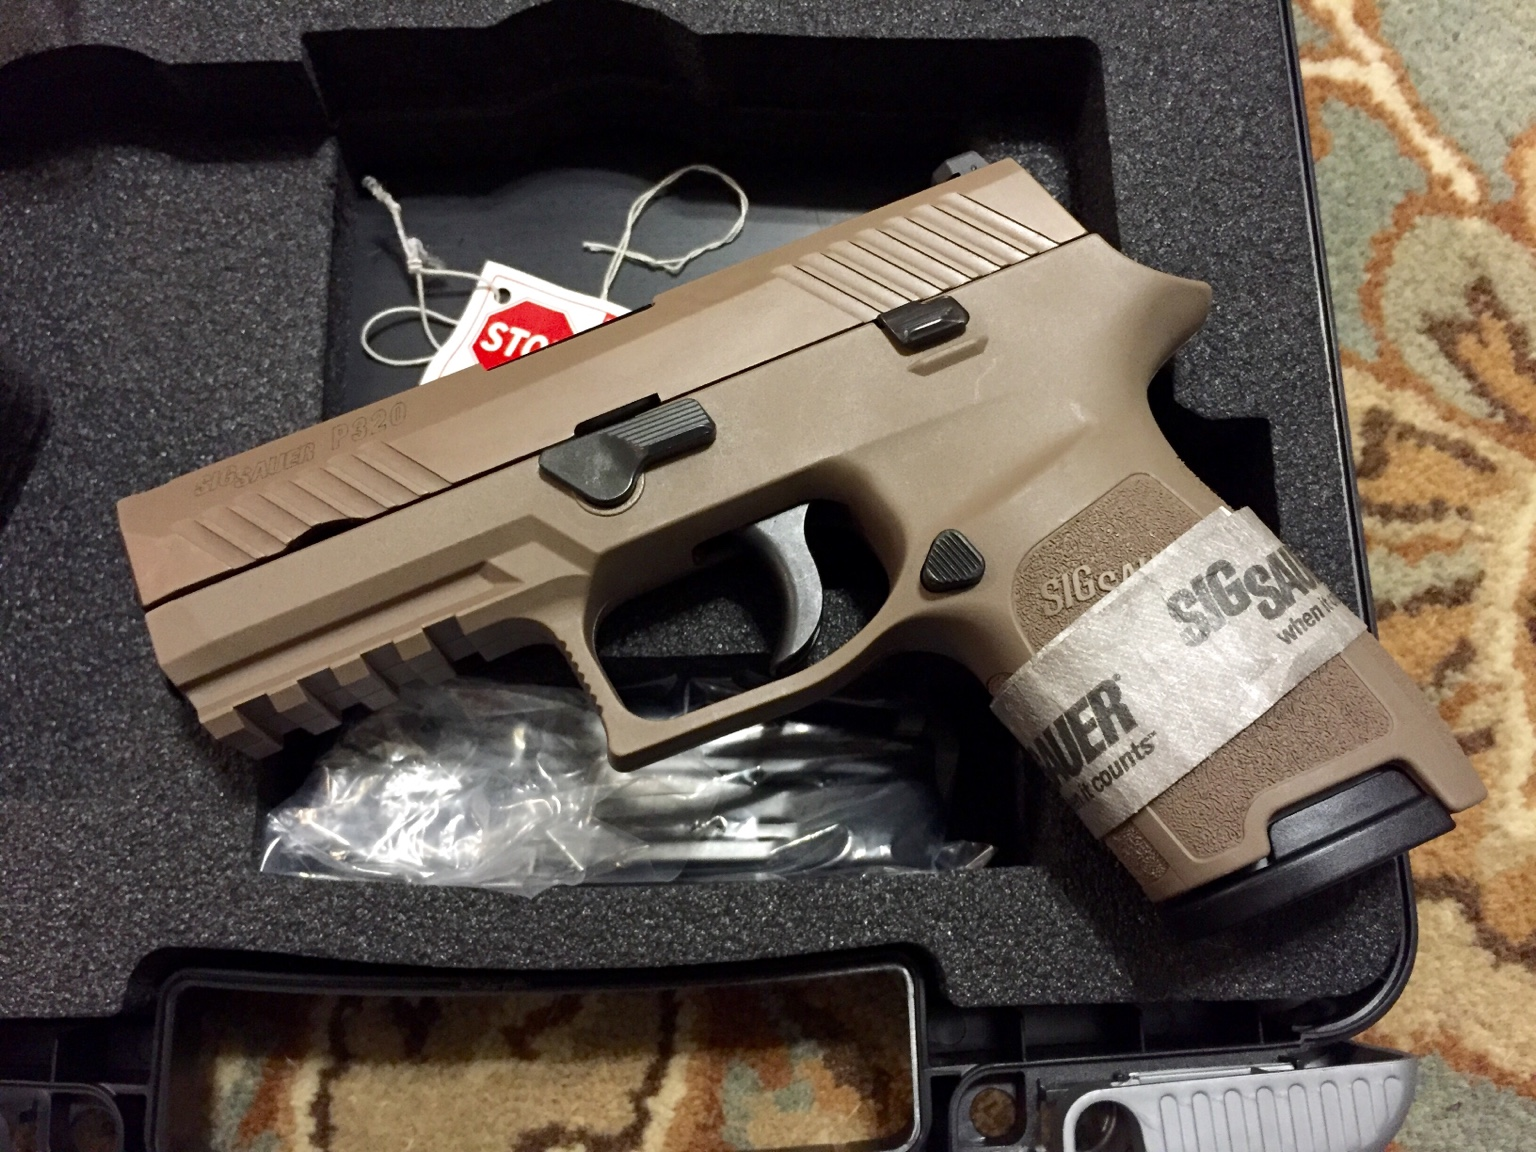 Sold - WTT - Sig P320 FDE W/ Night Sights For G19 in Same